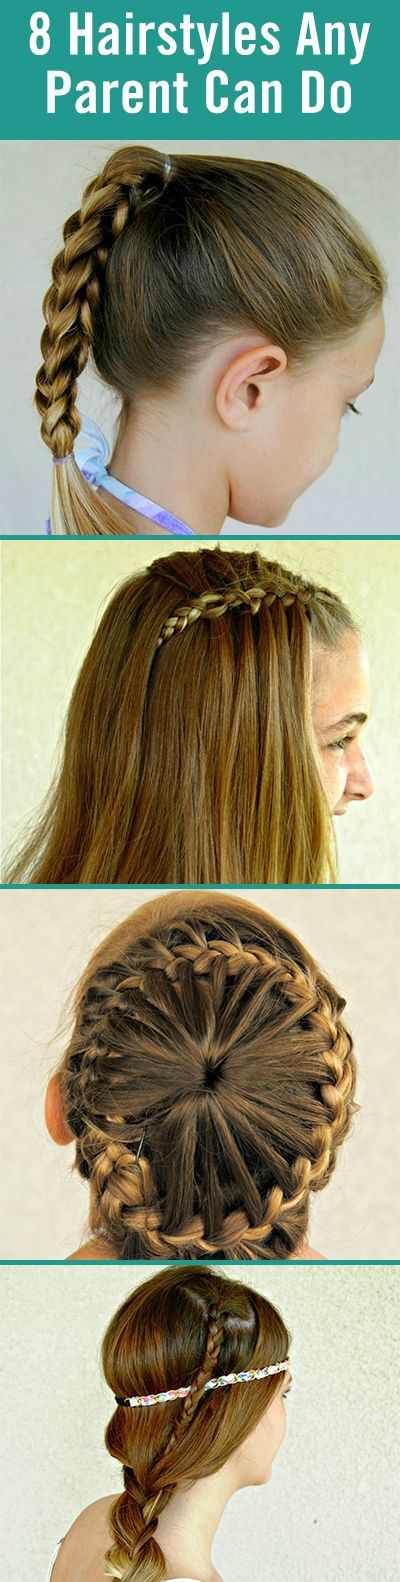 8 Super Cute Hairstyles Any Parent Can Do Themselves Hair